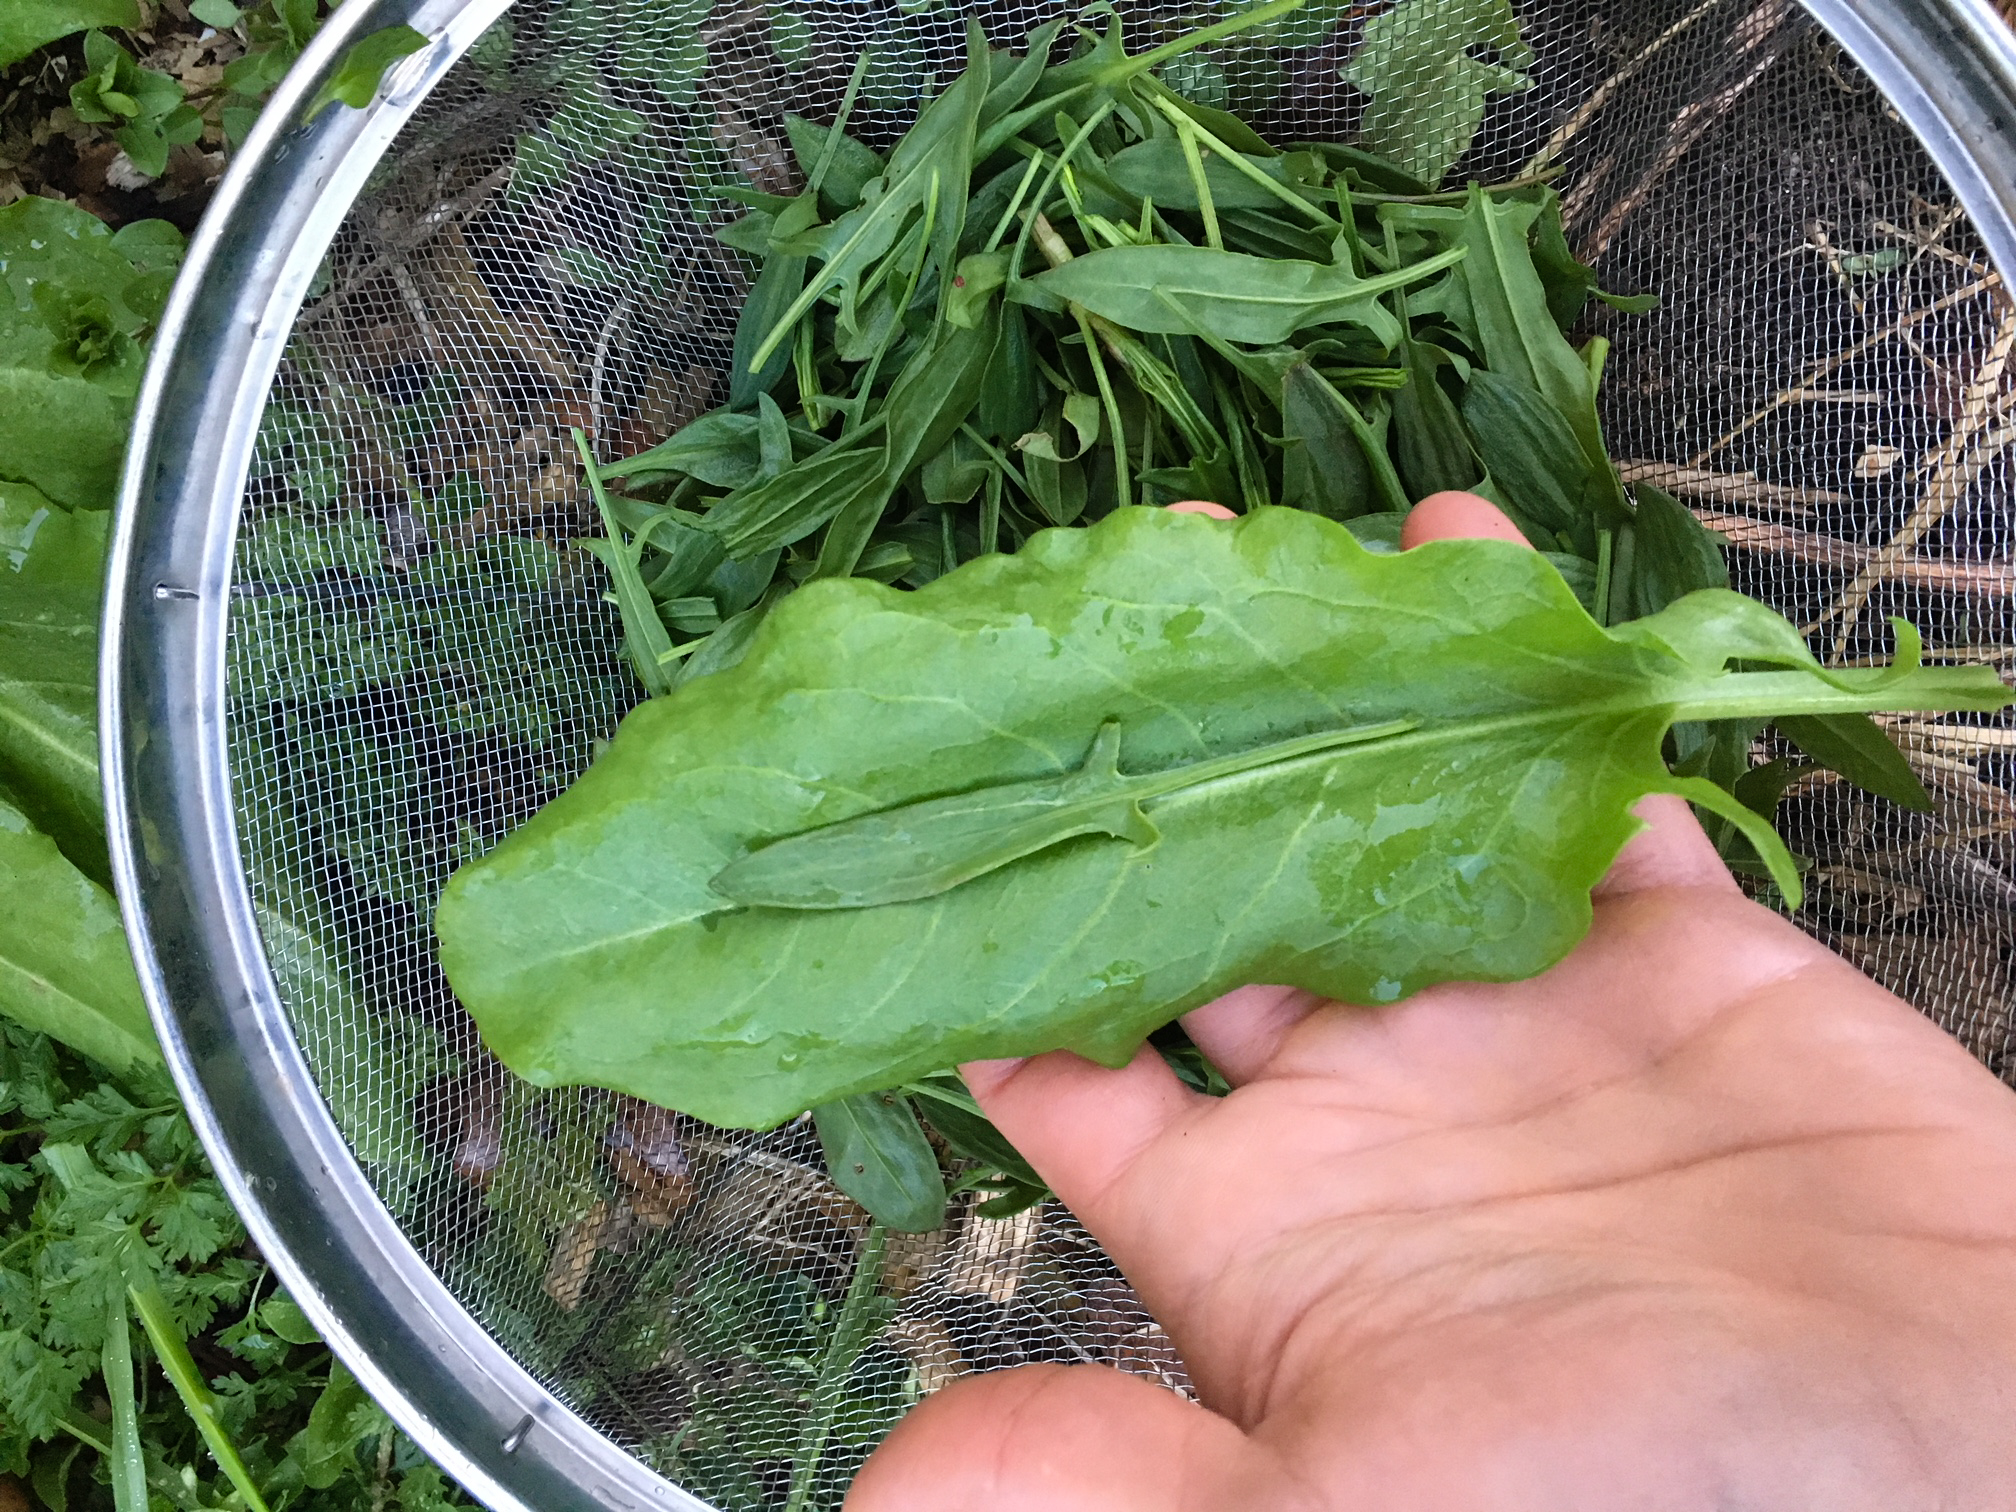 A colander with wild sheep's sorrel and a domesticated garden sorrel in-hand. Look closely at the small sheep sorrel leaf on top of the garden sorrel leaf and you can see the size difference between the two varieties.